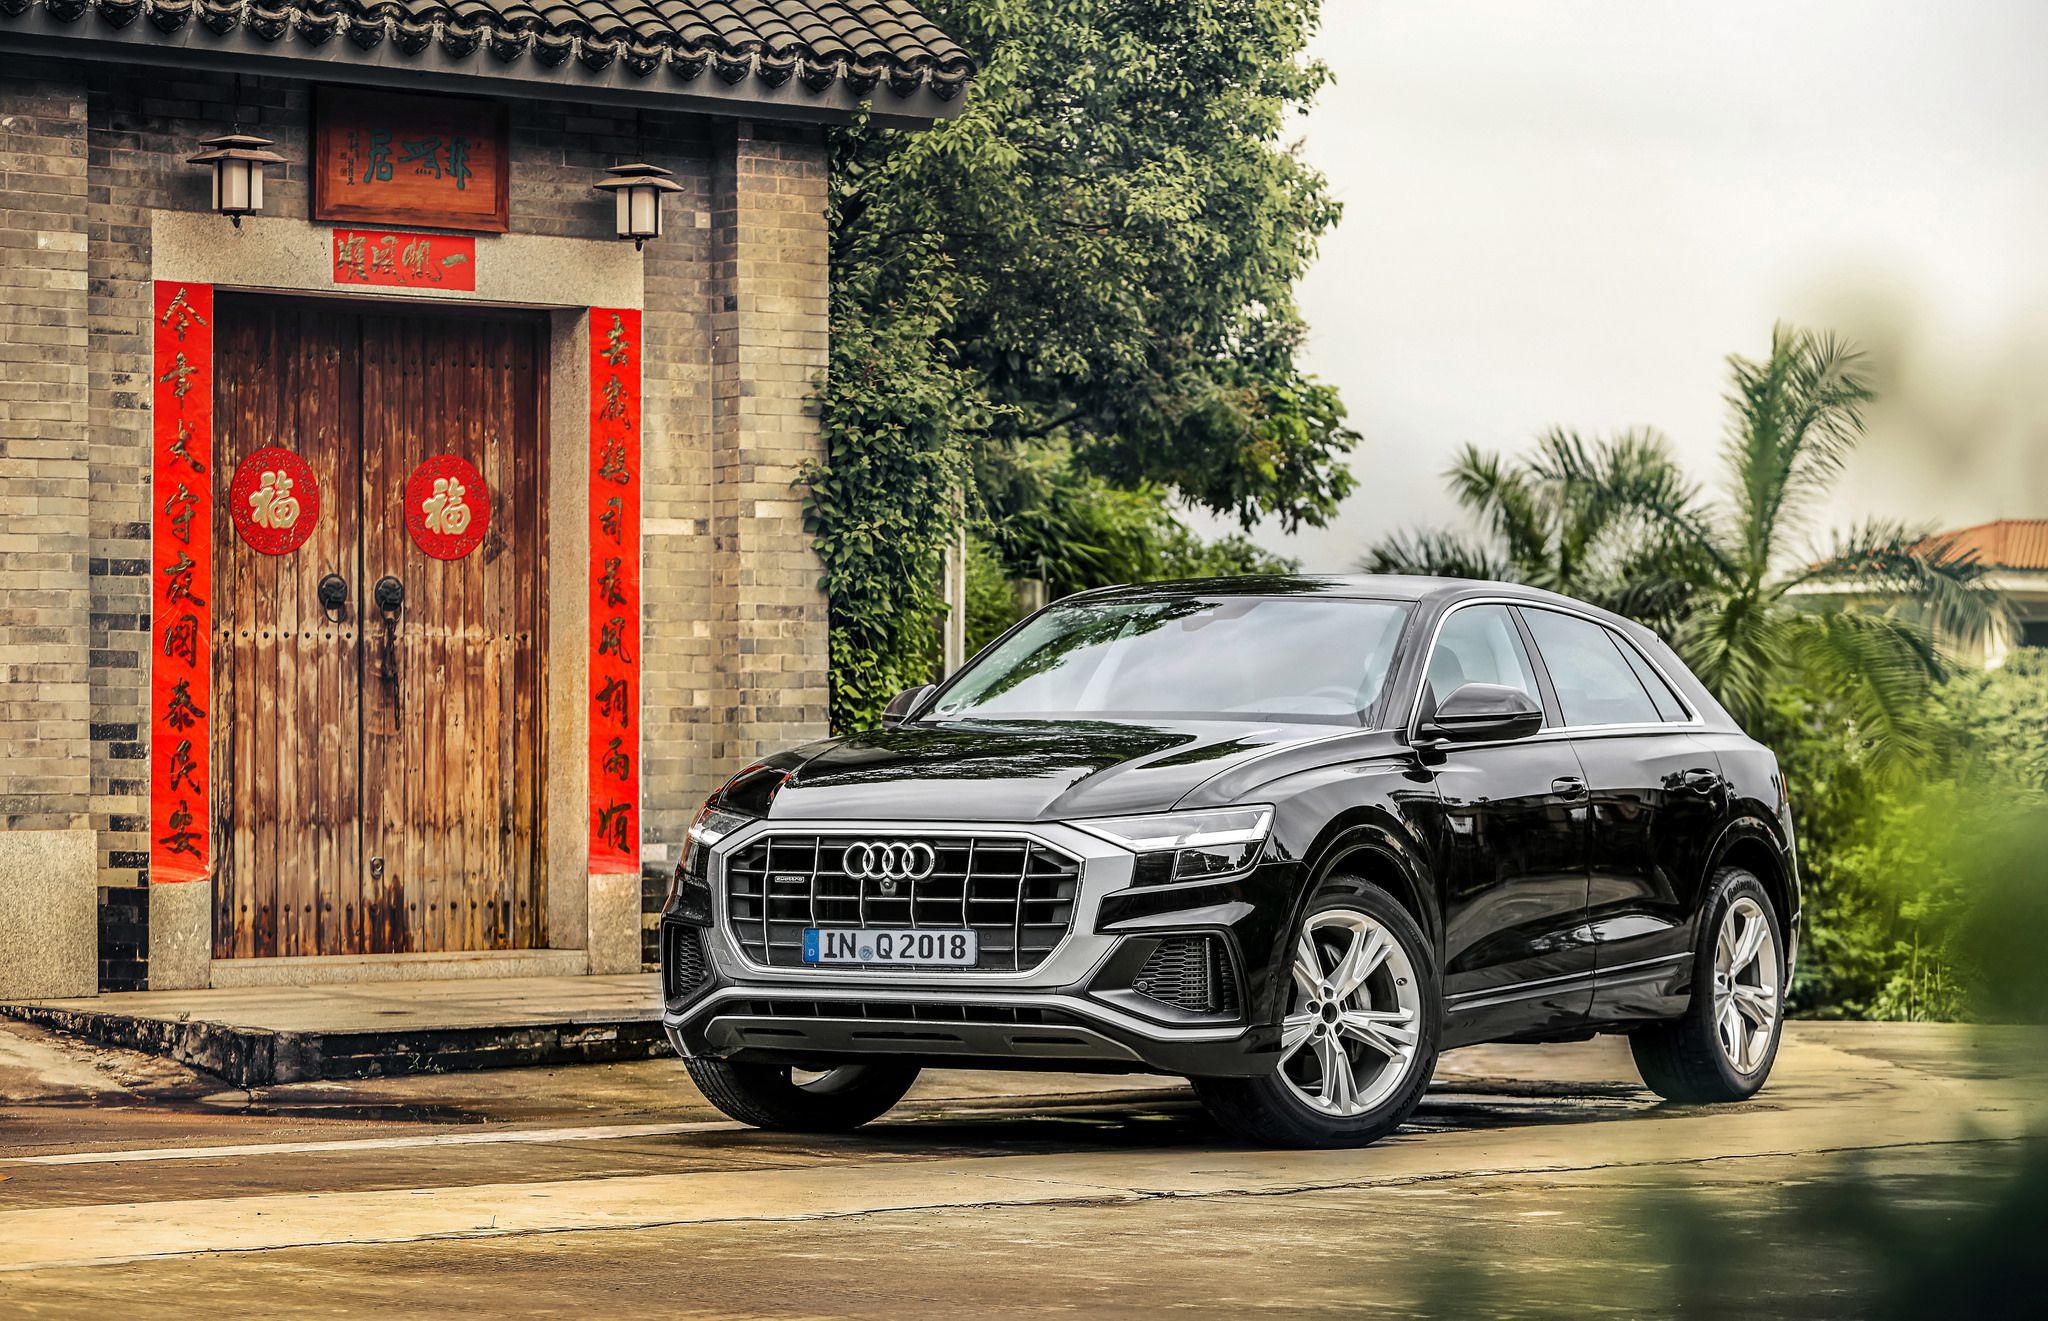 Wallpaper Hd 14 Images About Audi Q8 2019 In Hd On Wallpapersqq